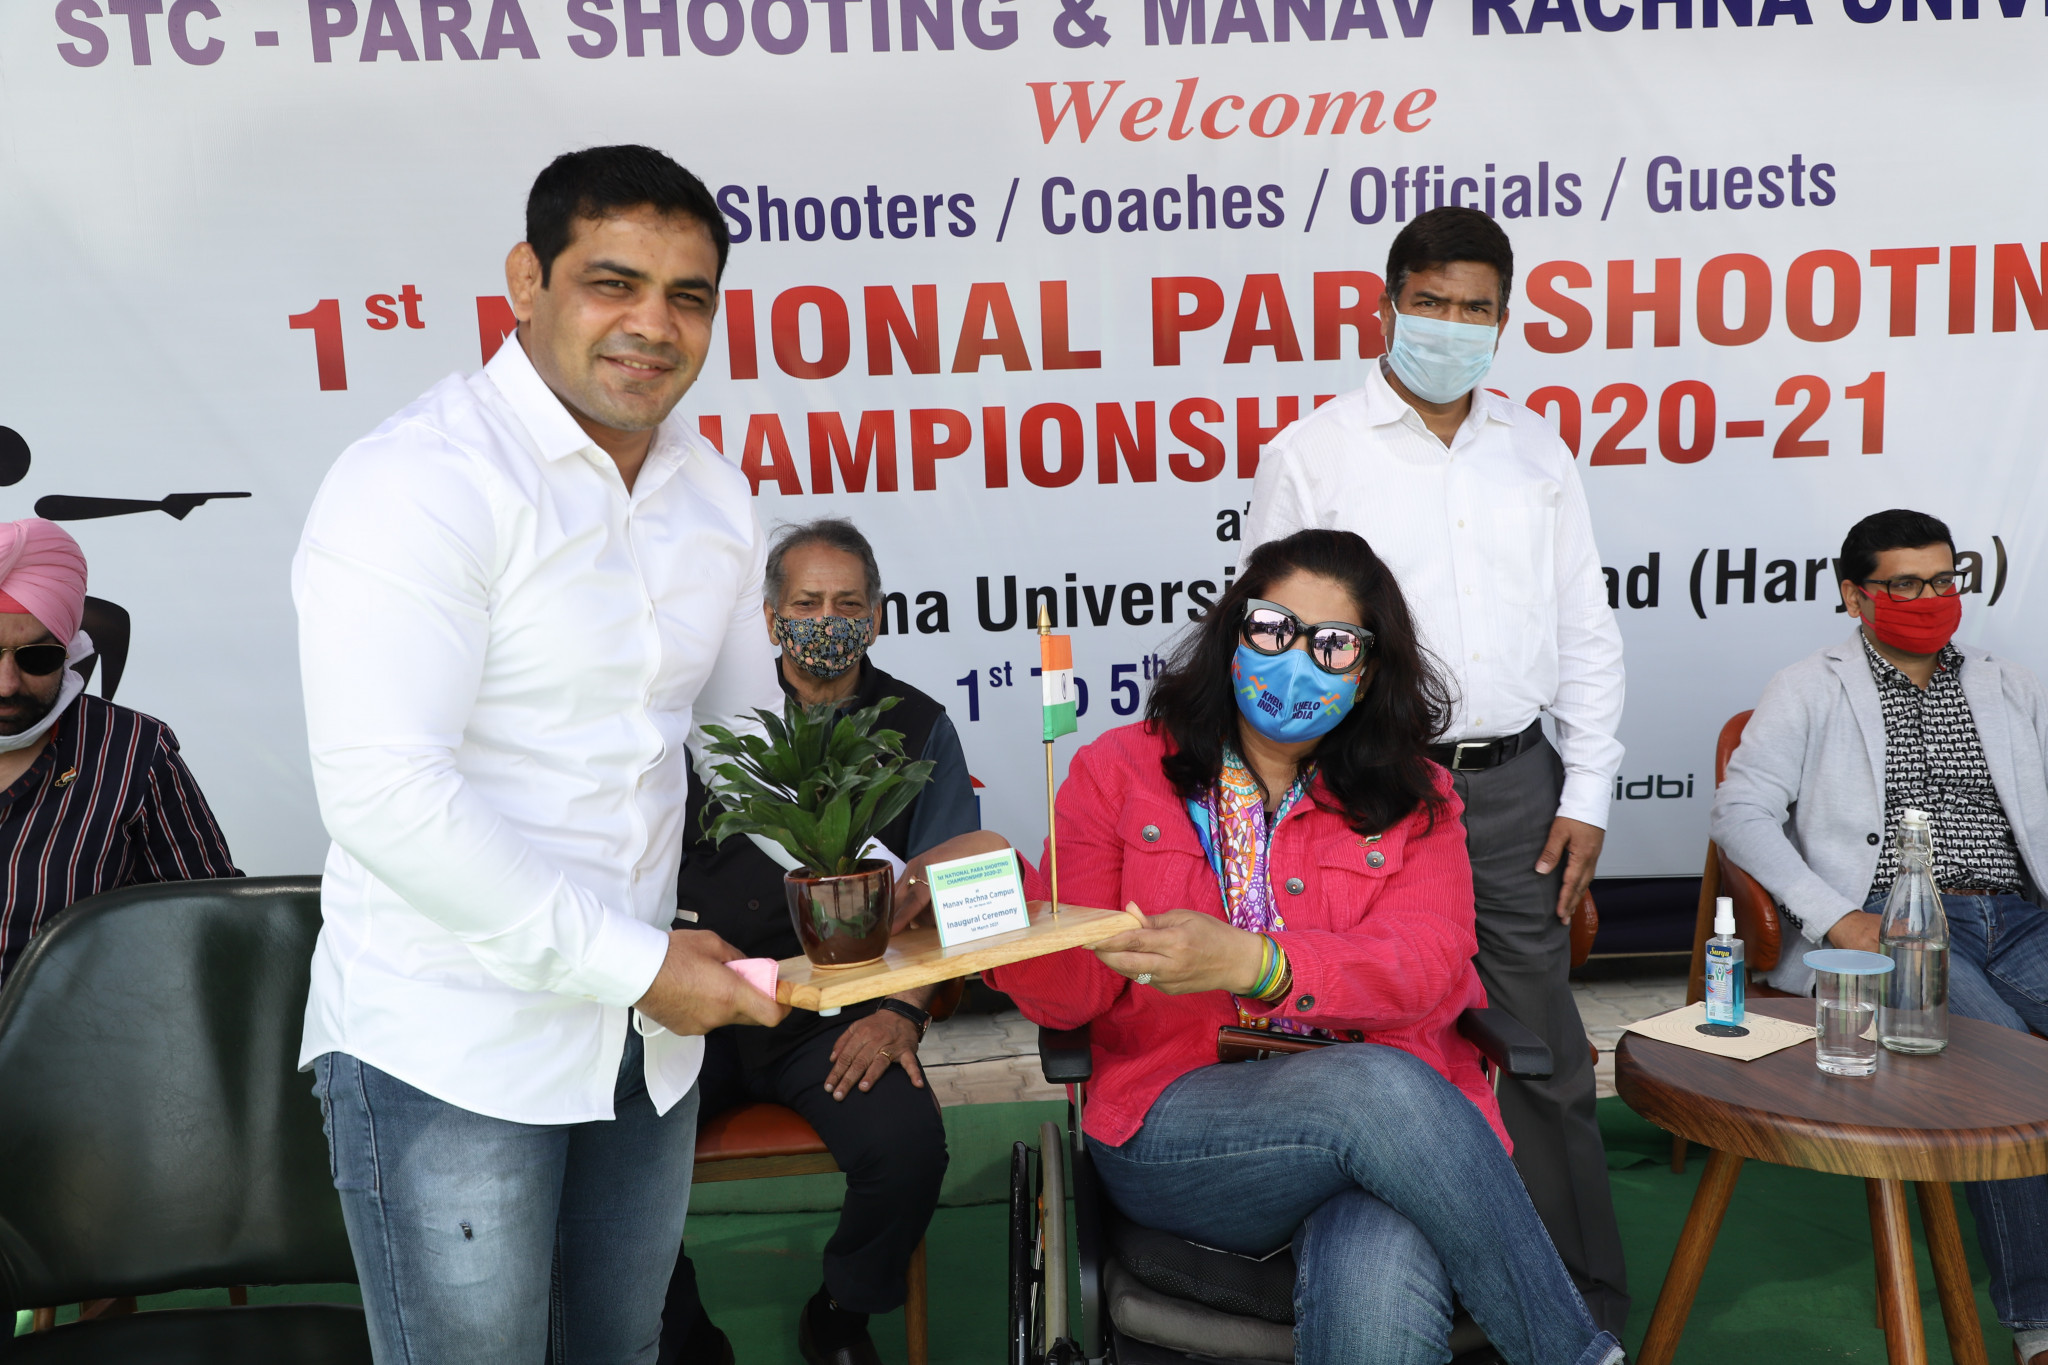 Wrestler Sushil Kumar with PCI President Deepa Malik at the inauguration of the first-ever National Para Shooting Championship ©PCI